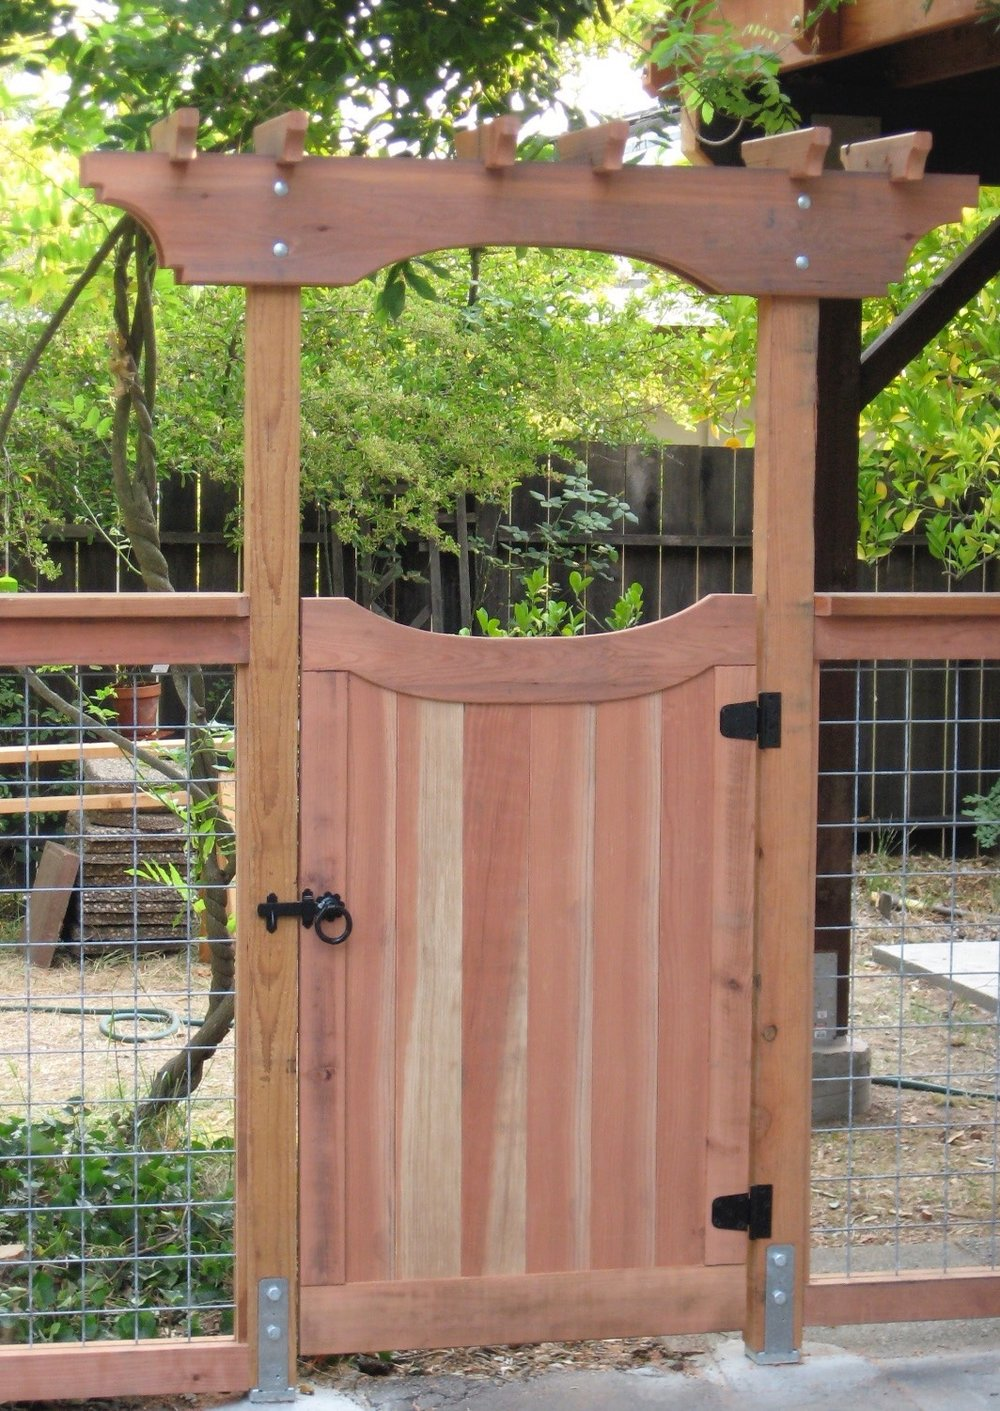 REDWOOD SIDE YARD GATE